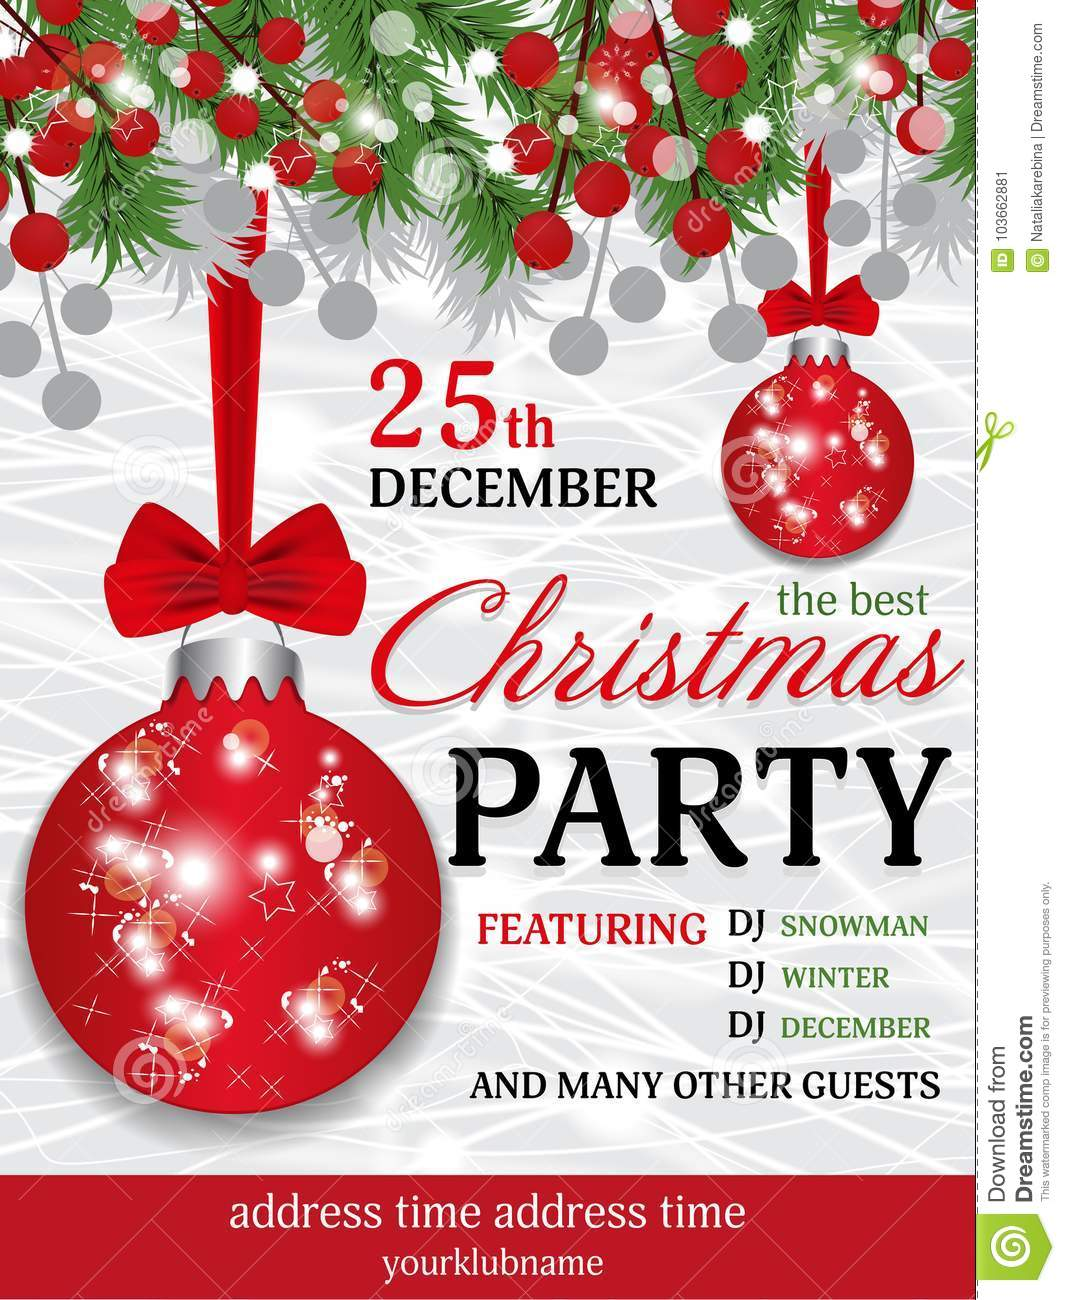 Christmas Party Invitation Template Background With Fir Branches And ...